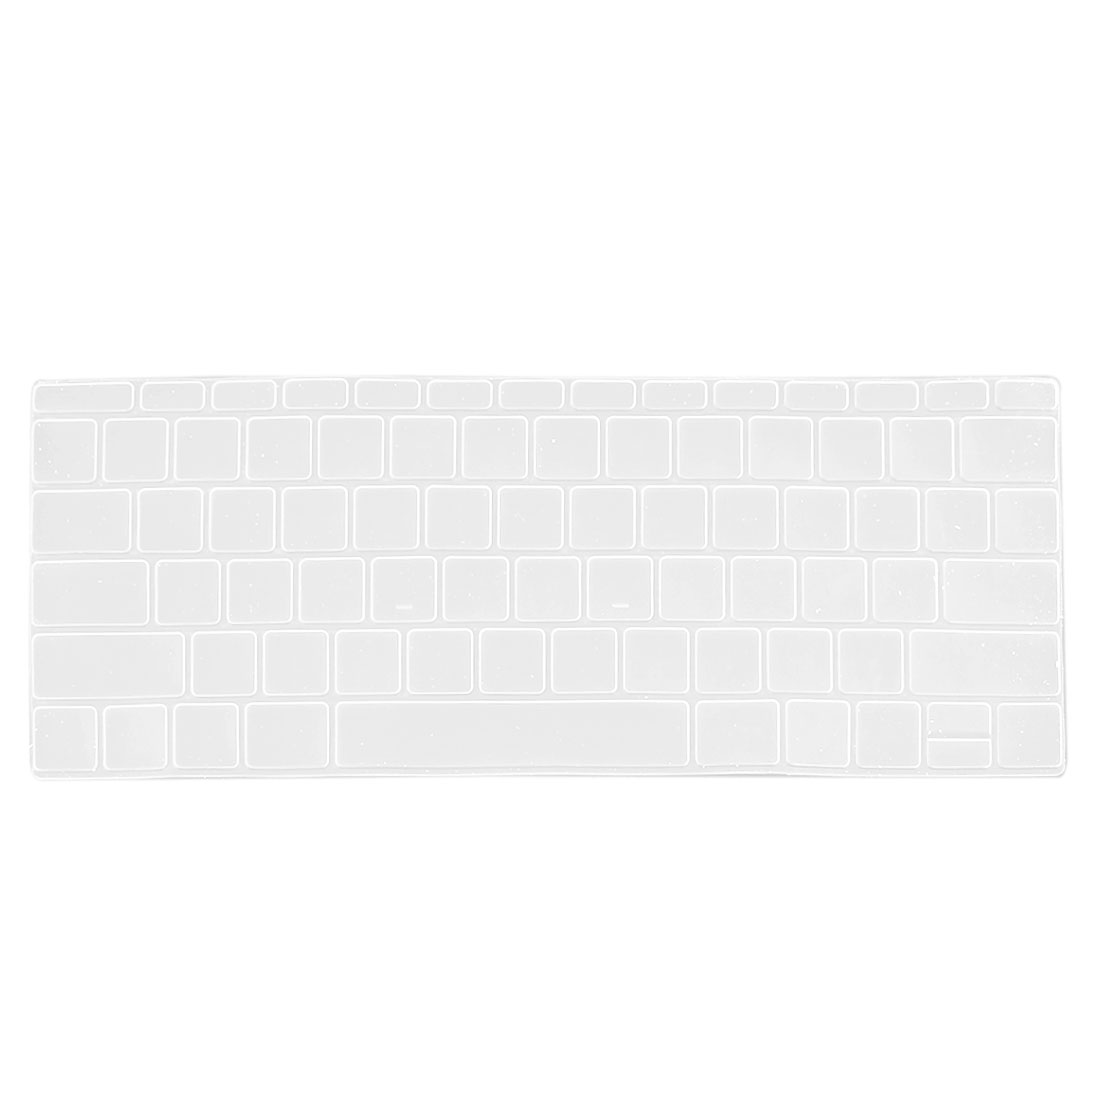 Laptop Rubber Protective Shell Keyboard Skin Cover Clear for MacBook 12""